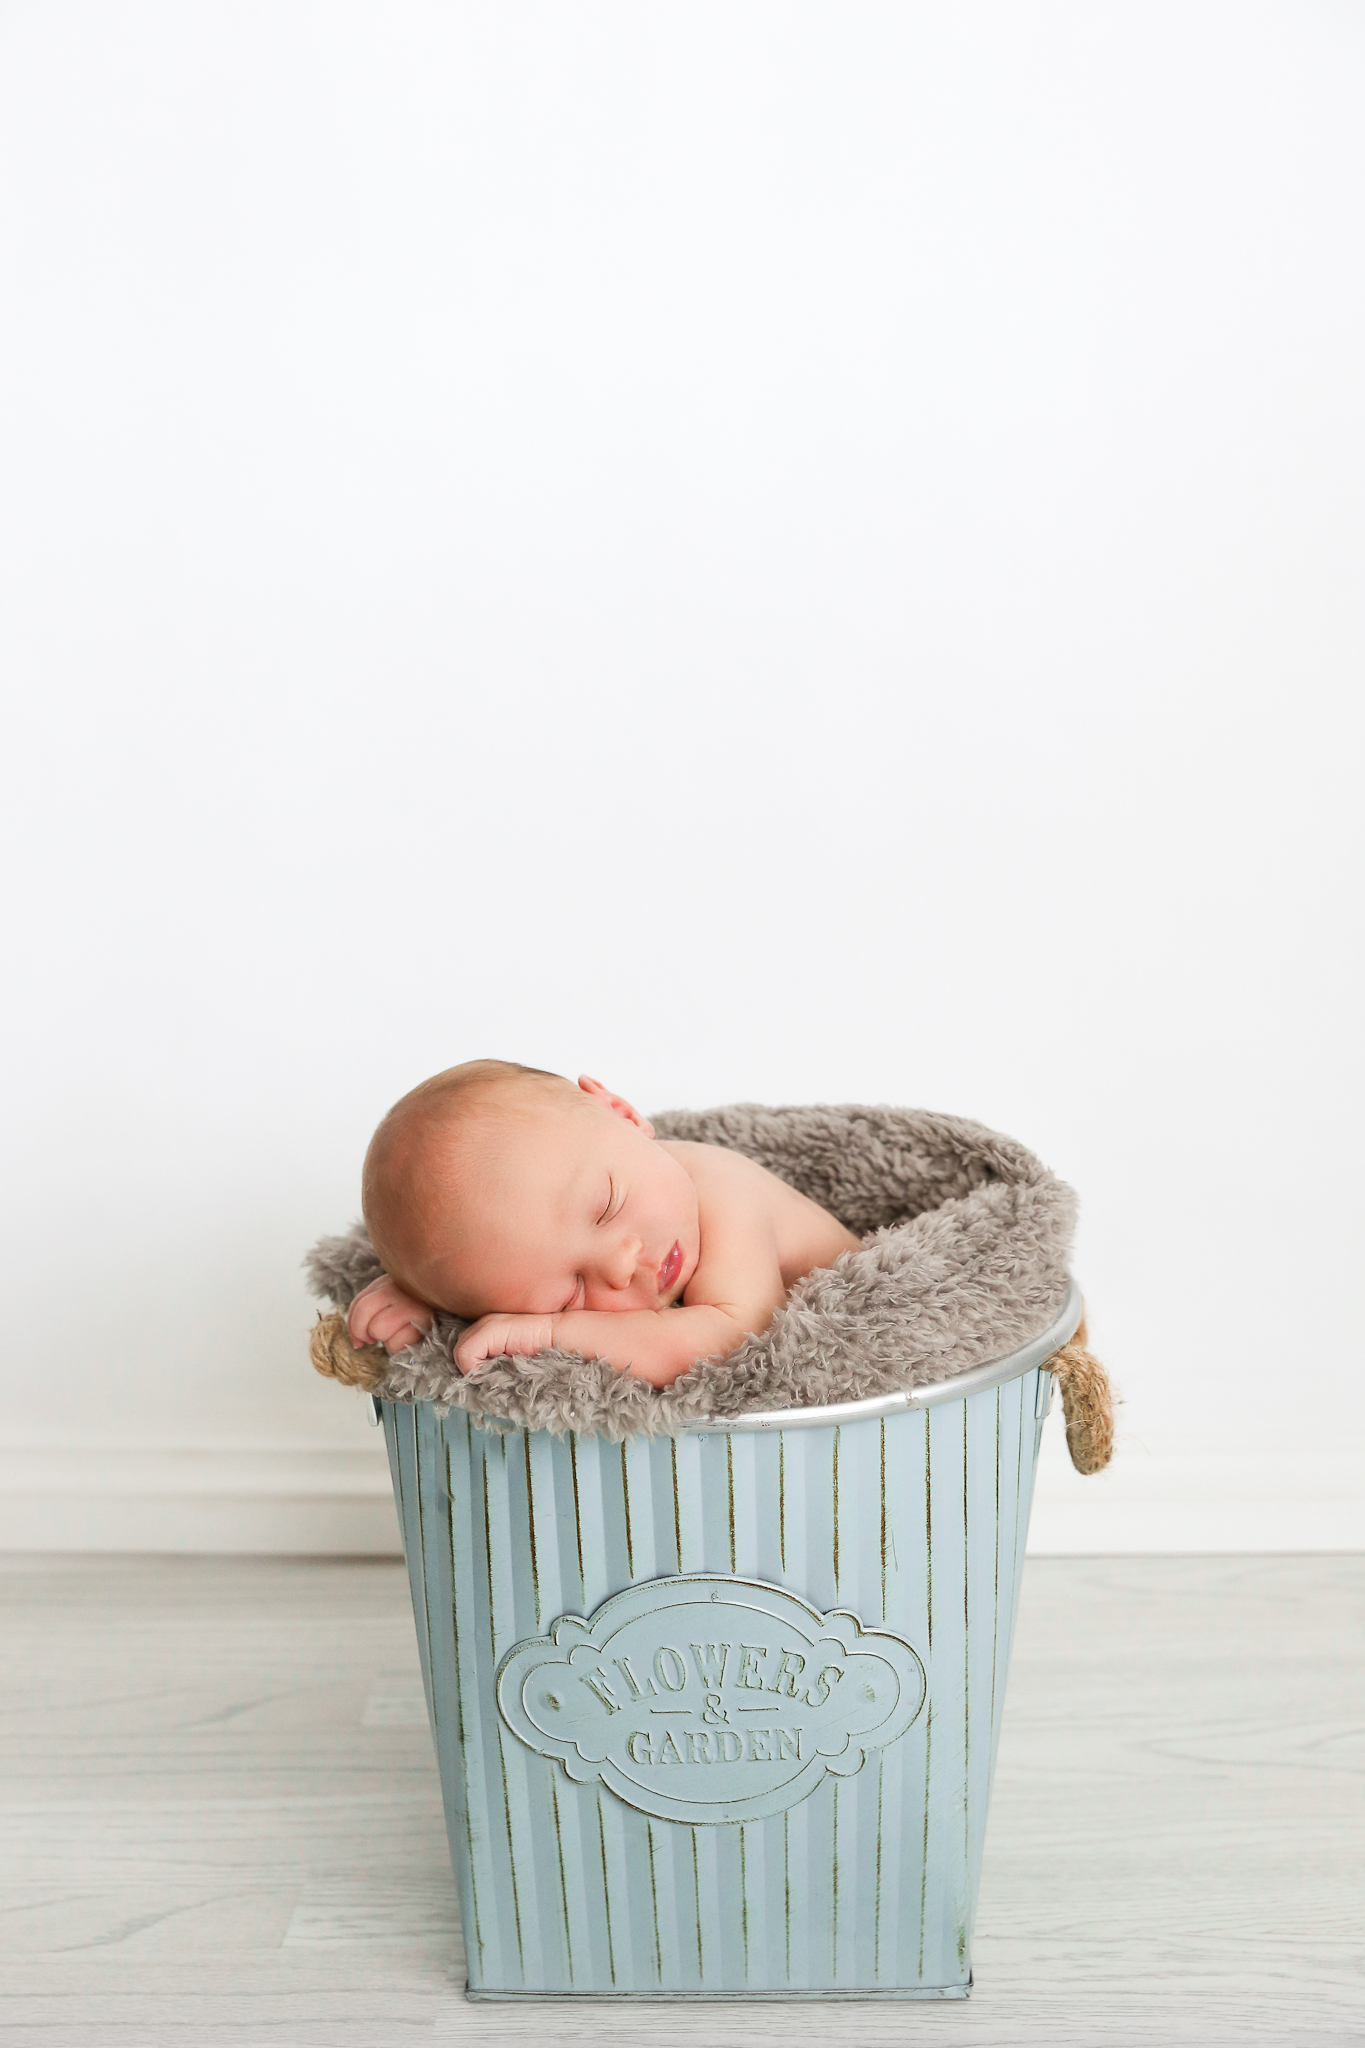 IMG_3215-Edit-Callum-Newborn-Rachael-Sture-Photography-16-06-17.jpg